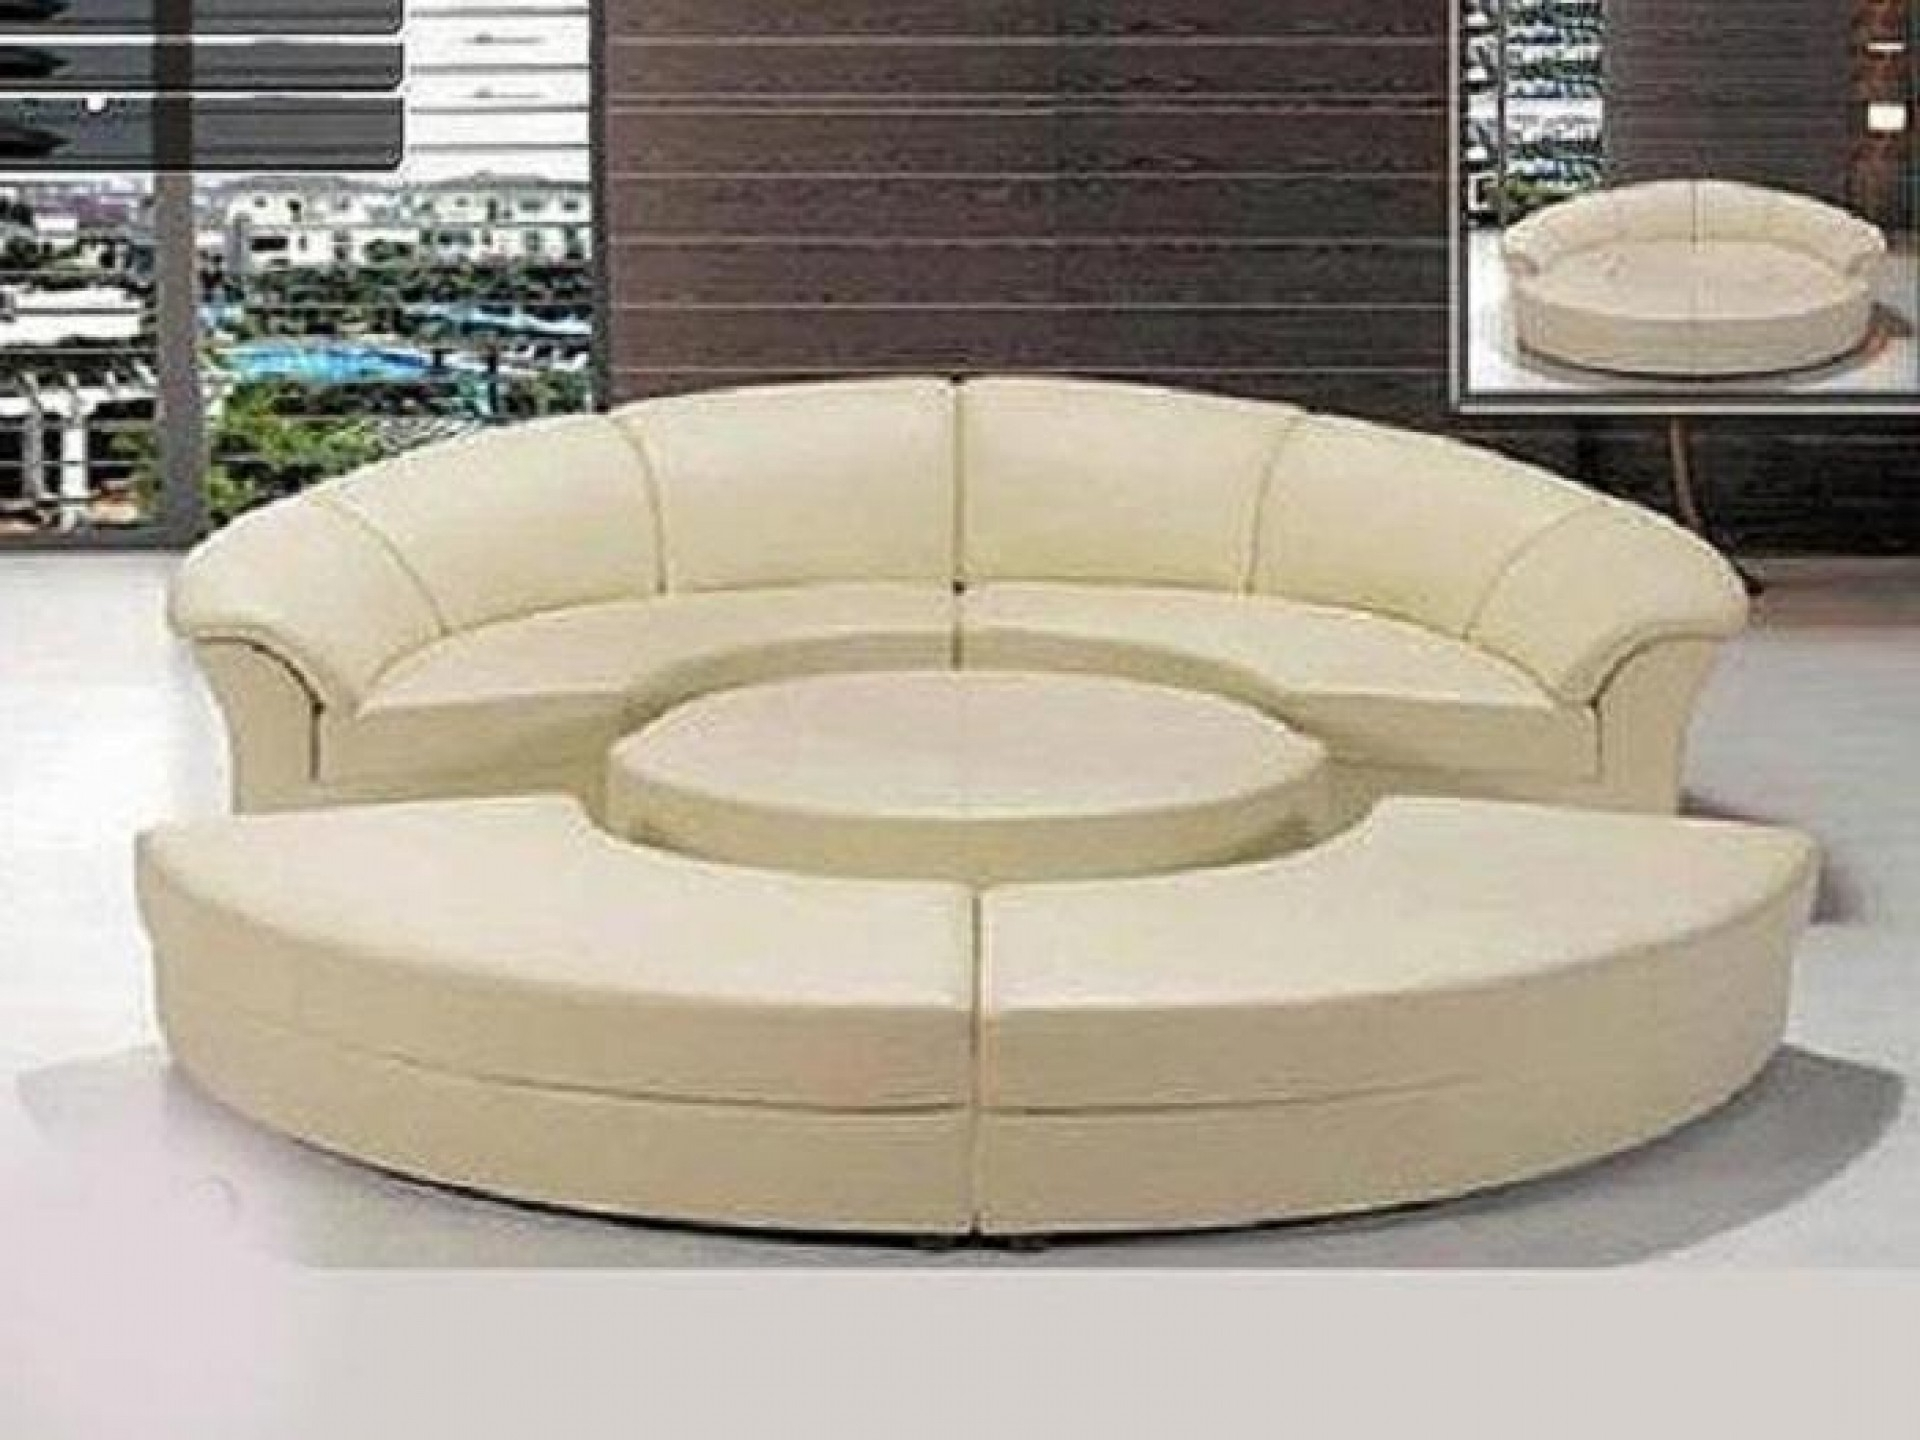 Affordable Tufted Sofas Intended For Preferred Cool Cheap Sofas For Sale For Your Sofa Glamorous Round Sectional (View 14 of 20)